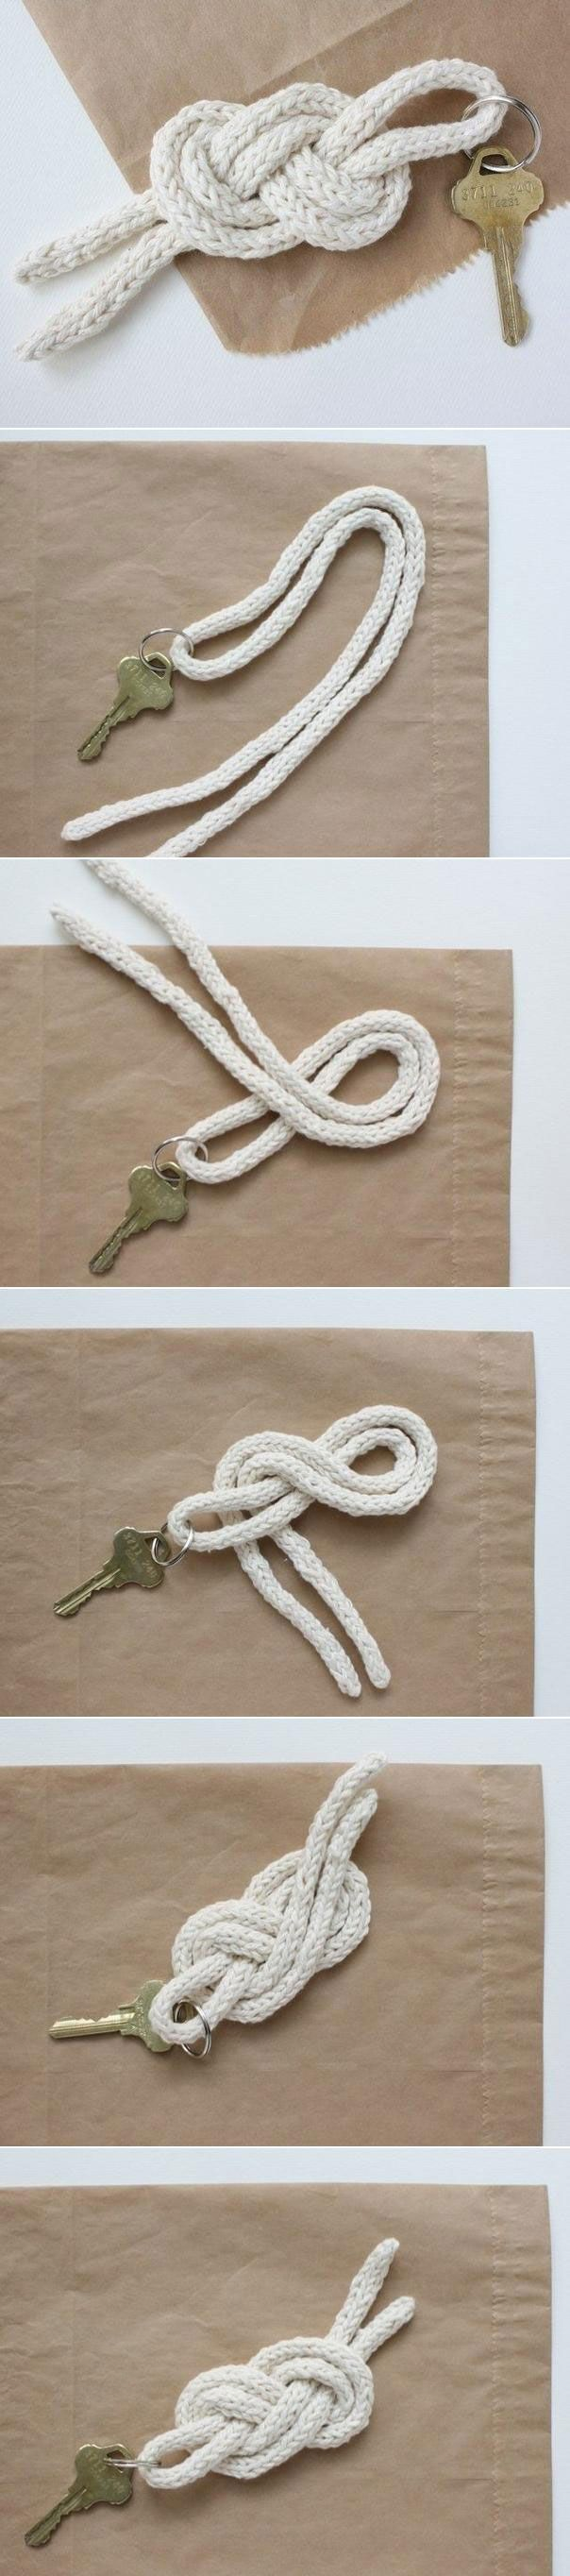 Knot key chain @Jessica Sotier Werner will you crochet me a string like this so I can make a key chain??!